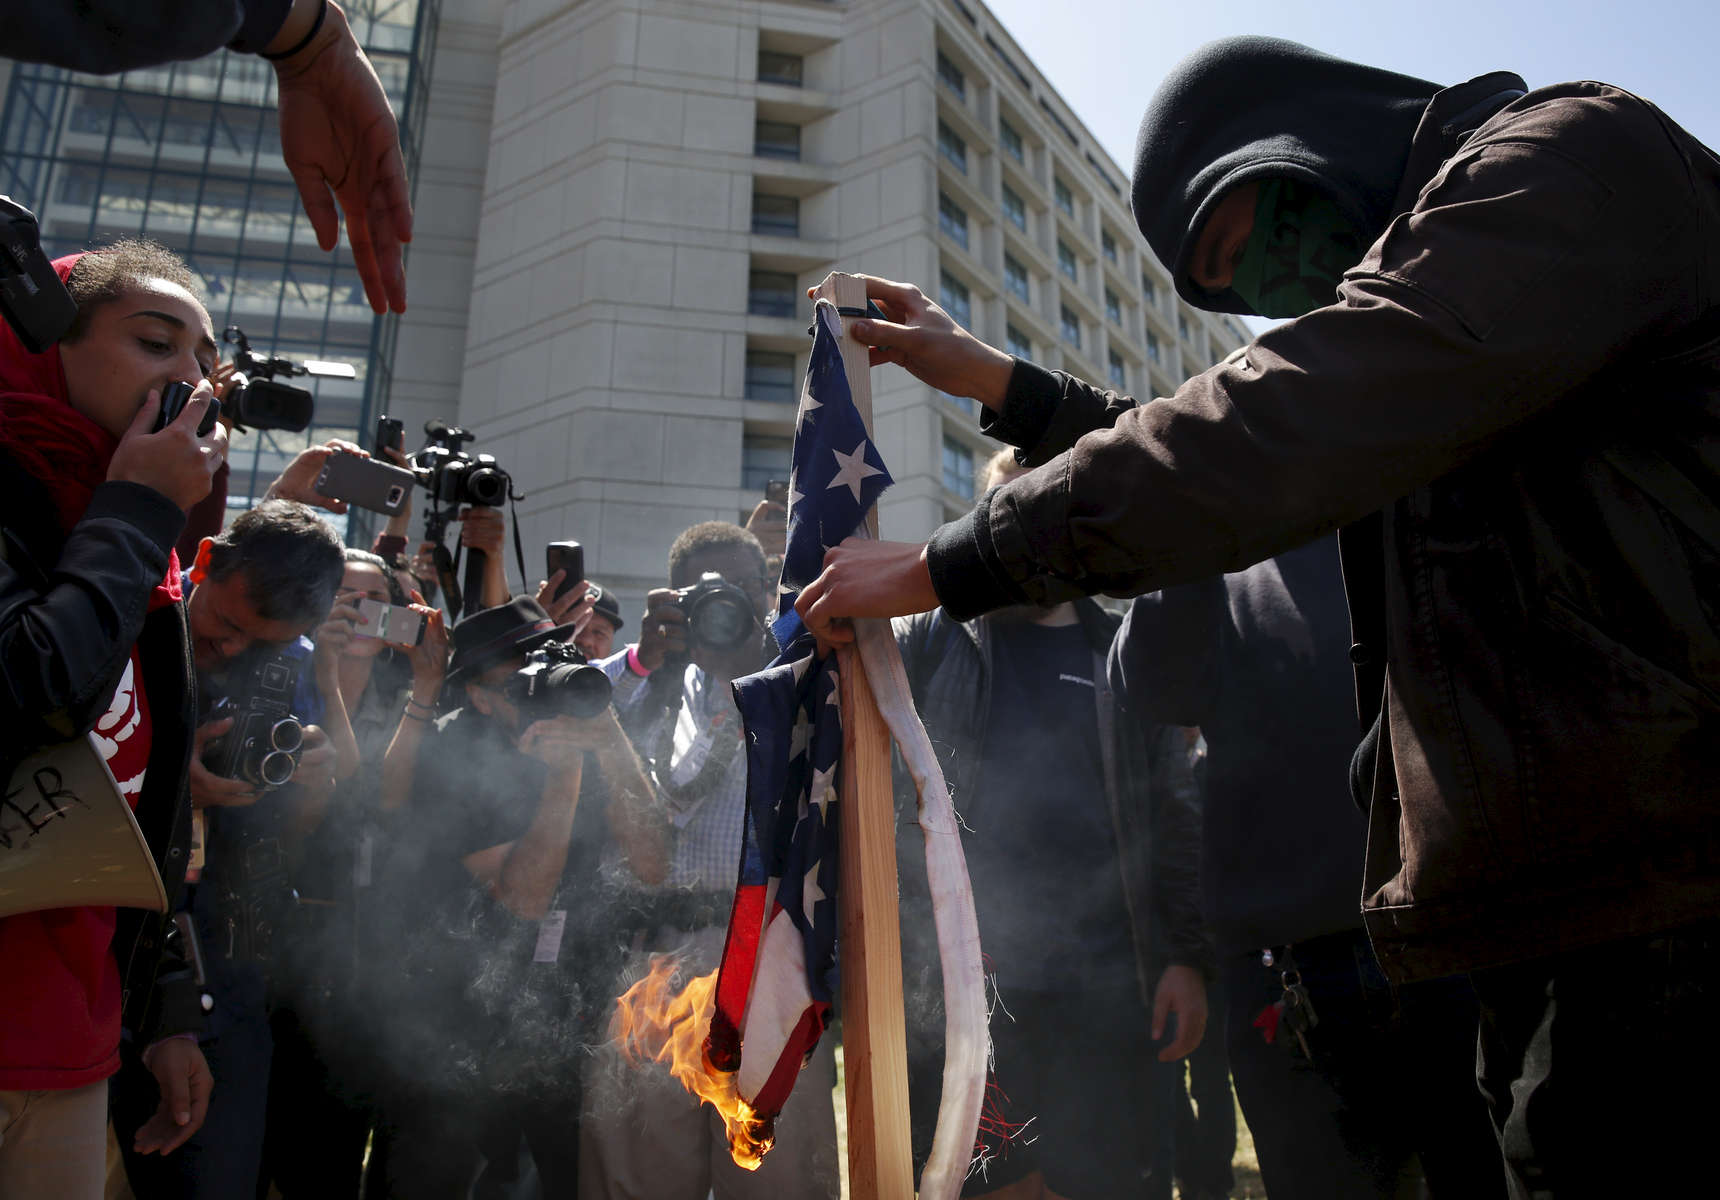 A protester burns a flag that was ripped from a Donald Trump supporter in front of a wall of media outside of the Hyatt Regency during the first day of the California Republican Party Convention which featured speeches from Presidential candidates Donald Trump and John Kasich among others April 29, 2016 in Burlingame, Calif.